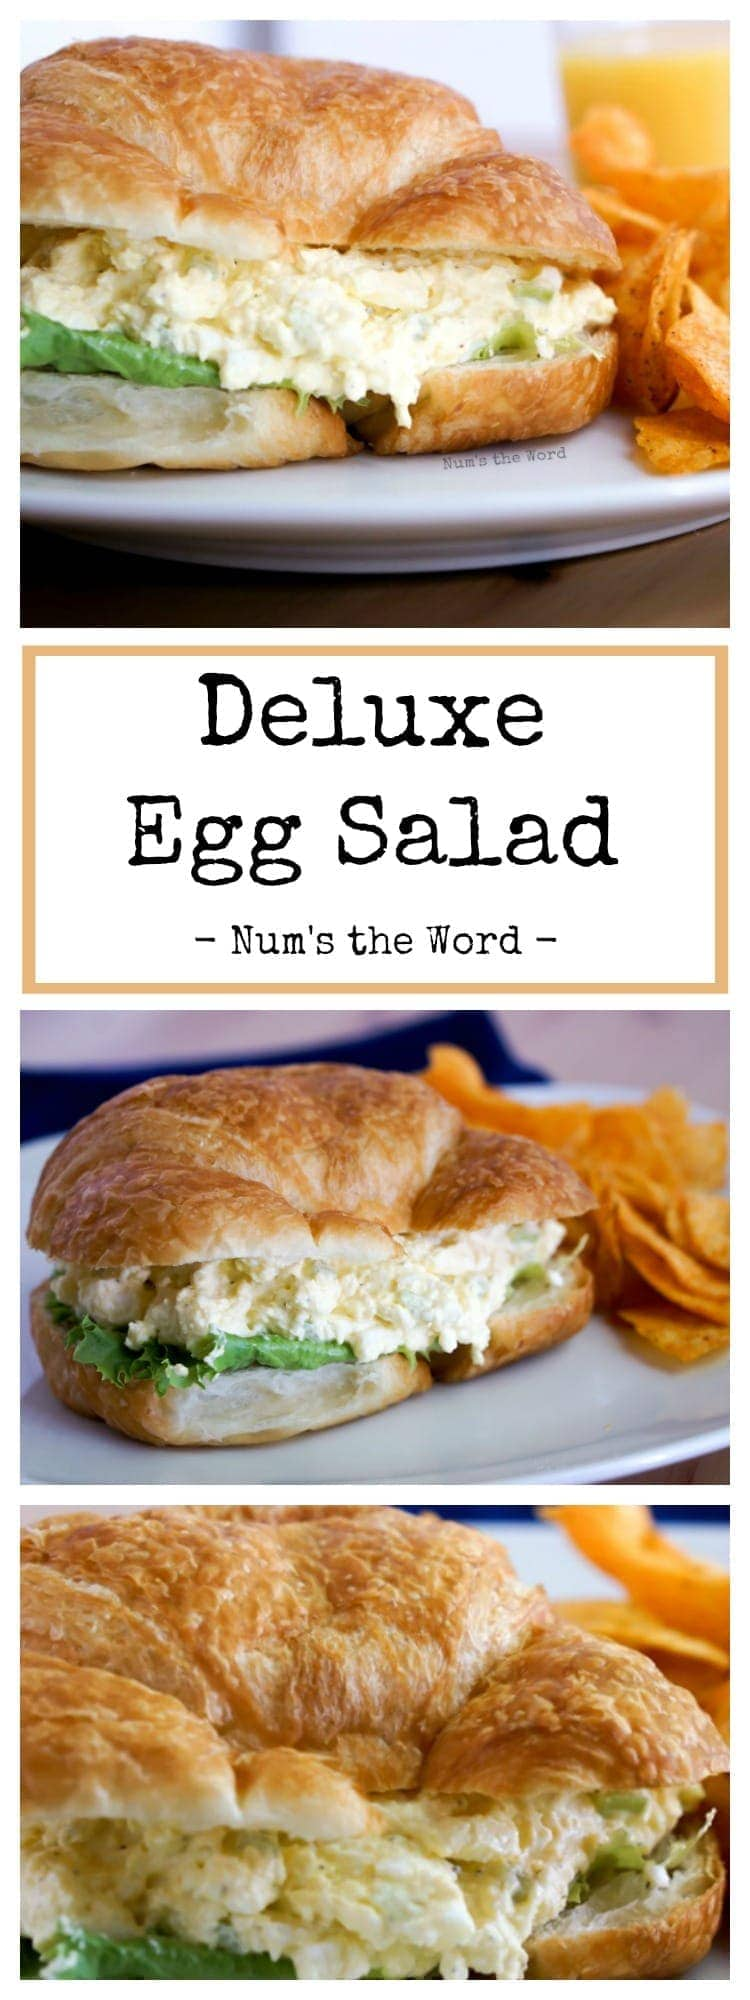 Deluxe Egg Salad - Pinterest long pin collage of photos